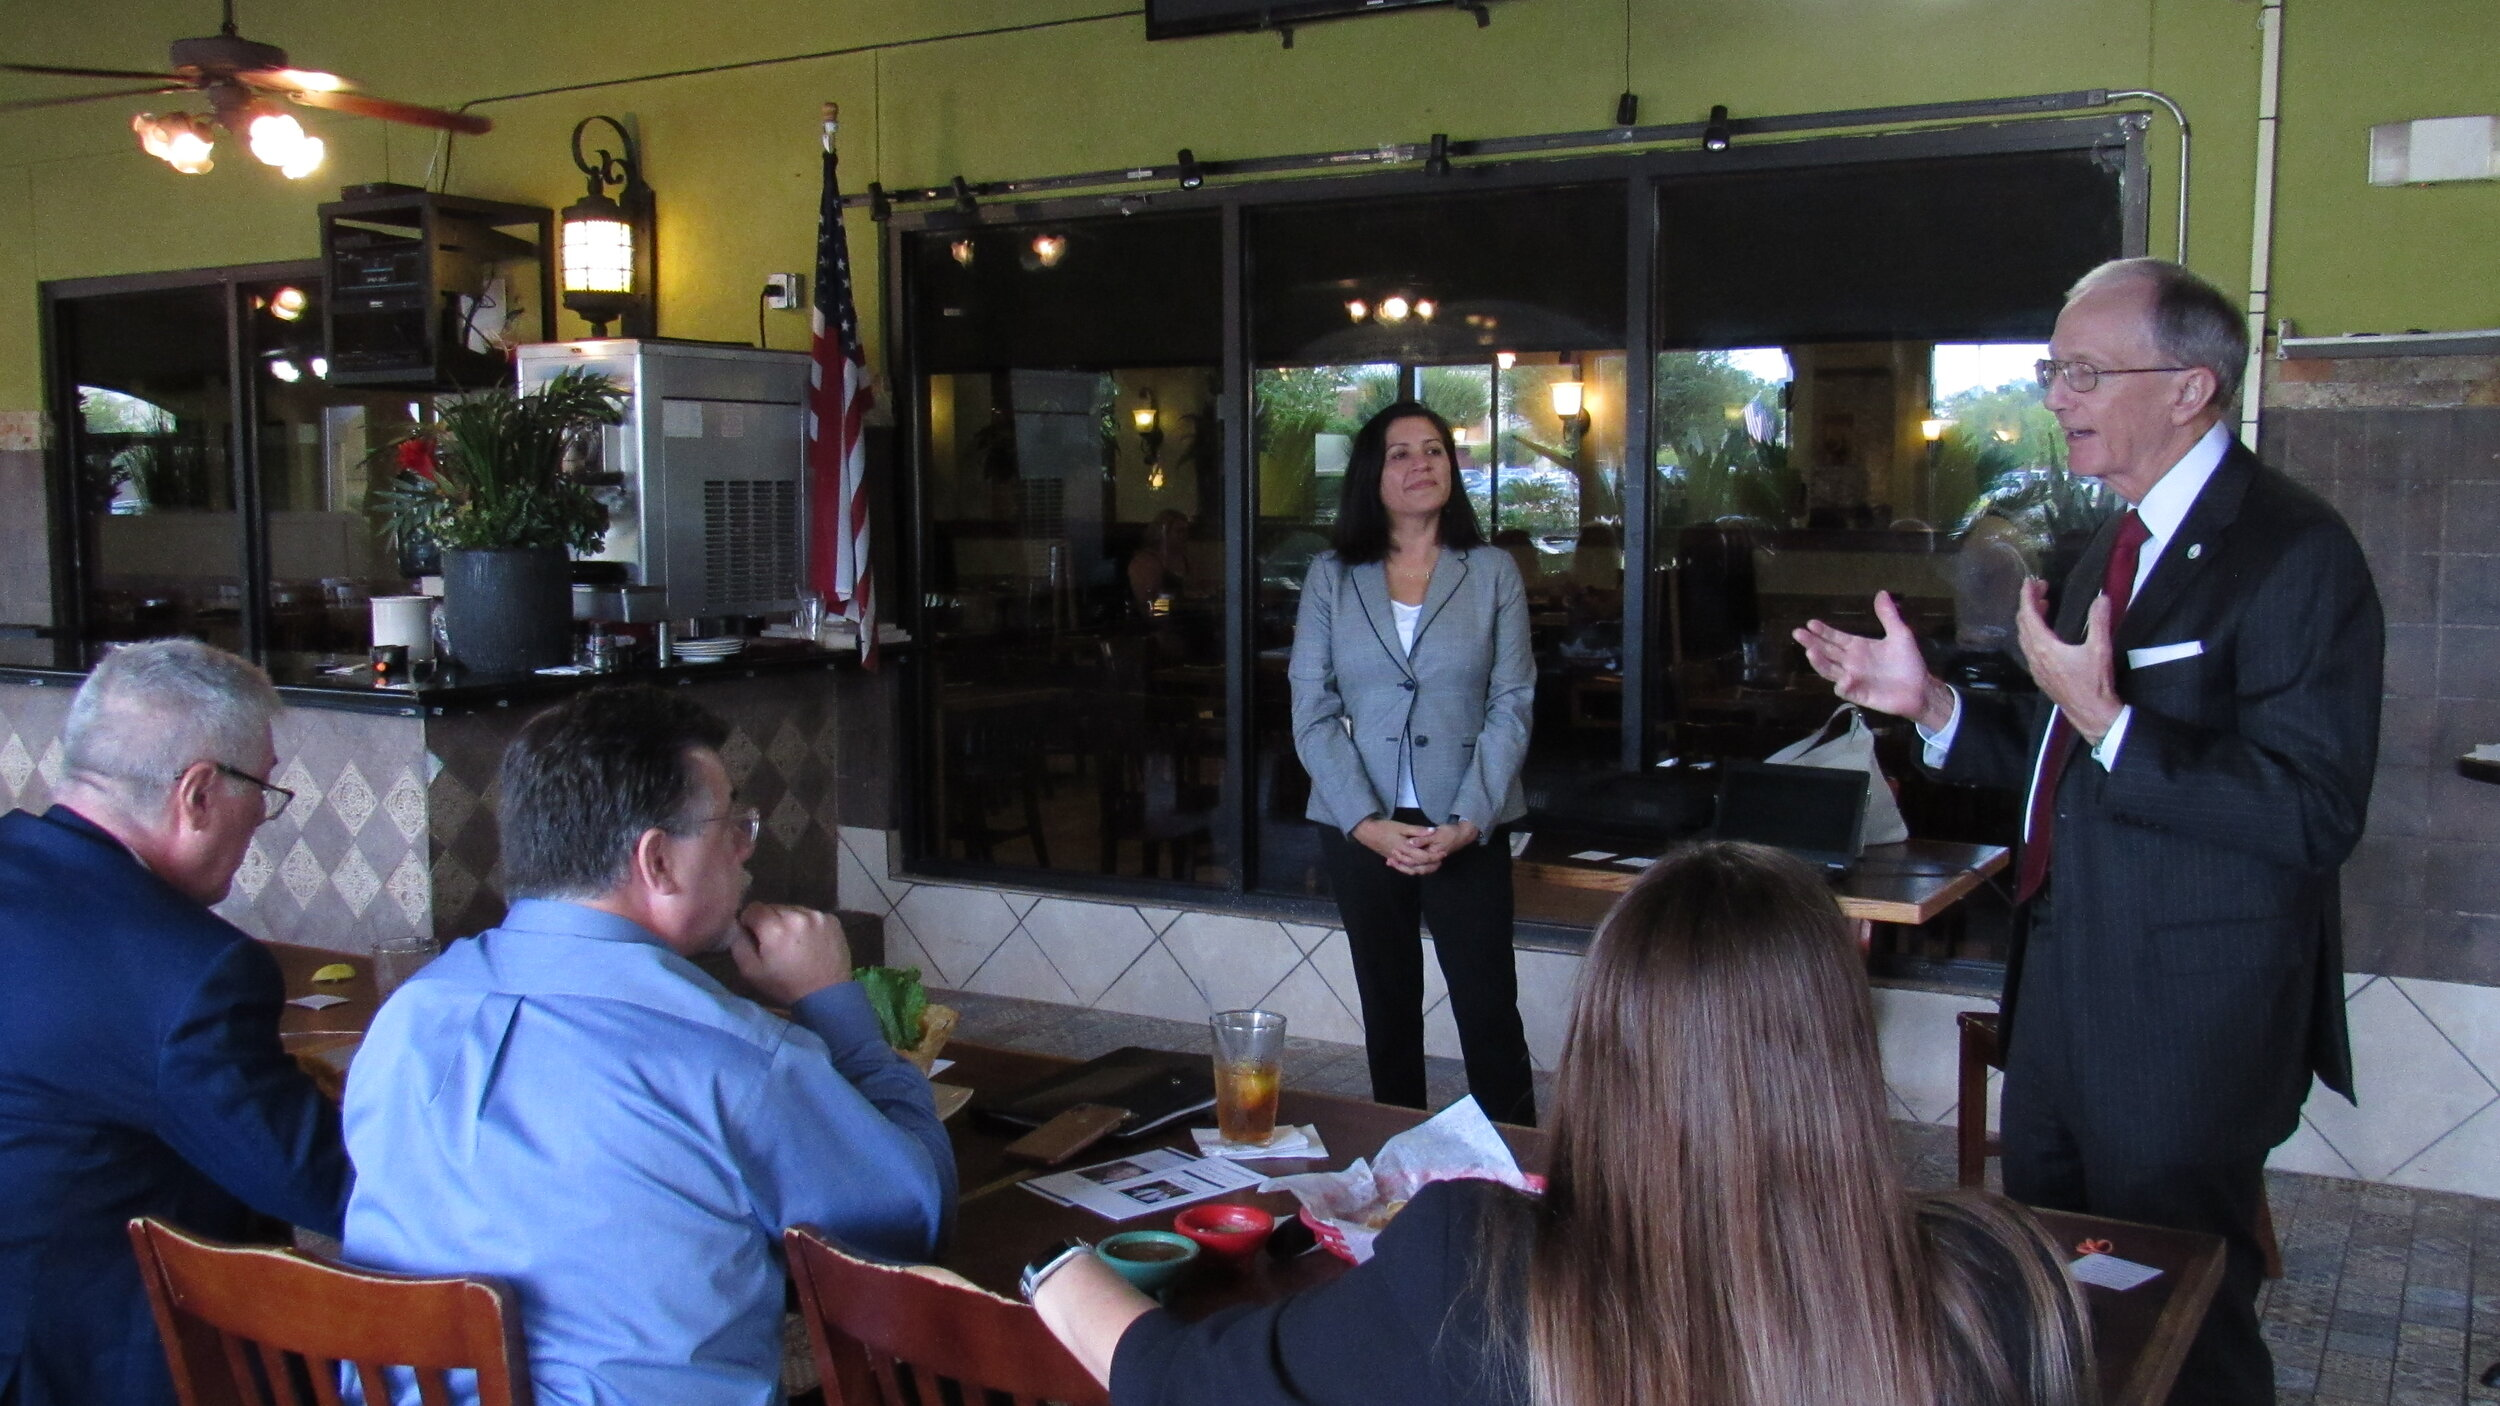 Celina Vinson, managing attorney for litigation (left), and County Attorney Vince Ryan discuss community protection matters with the Northeast Harris County Bar Association on Sept. 13.